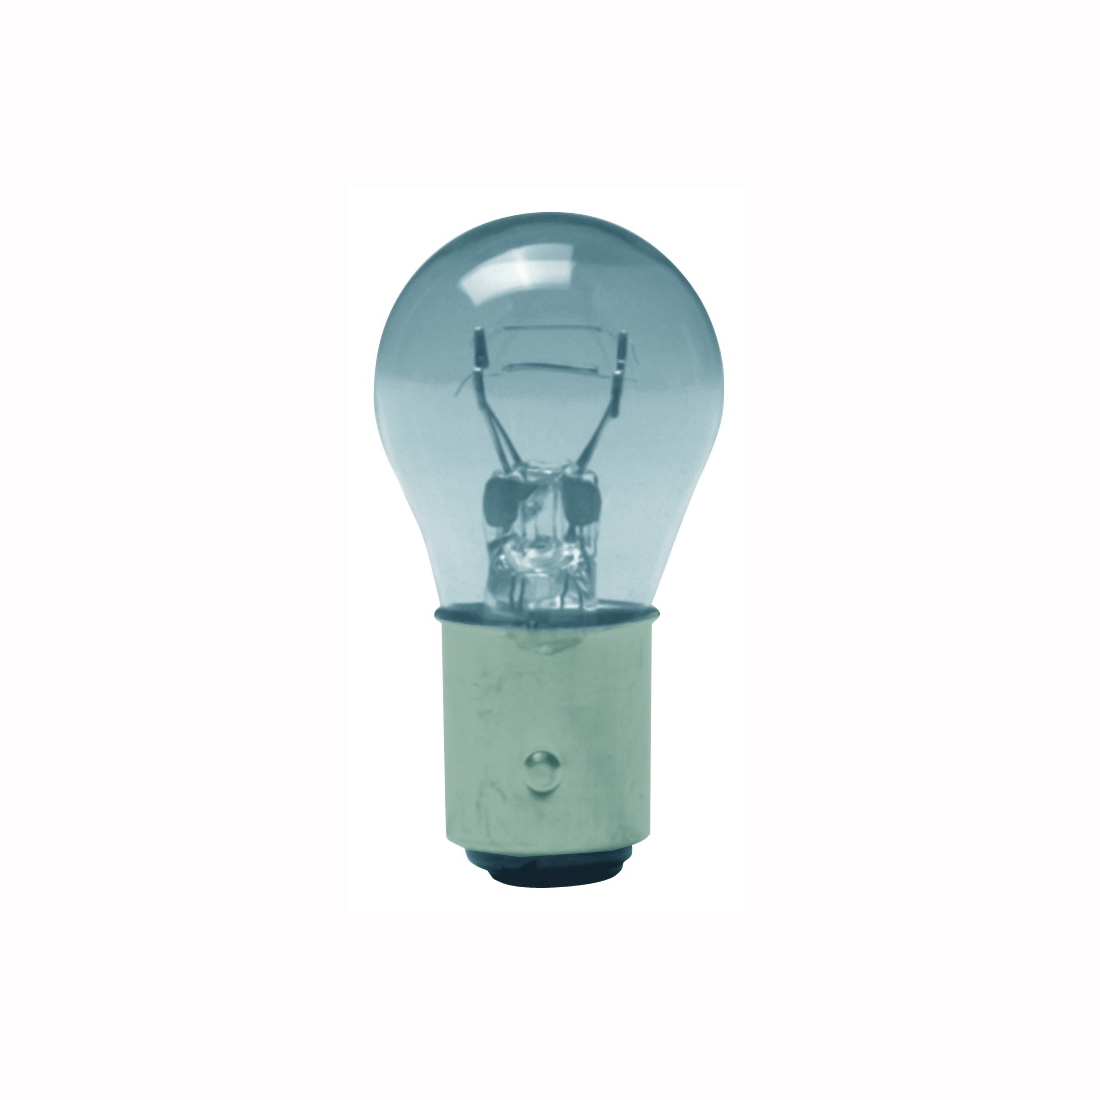 Picture of EIKO 2057-2BP Lamp, 12.8/14 V, S8 Lamp, Double Contact Base